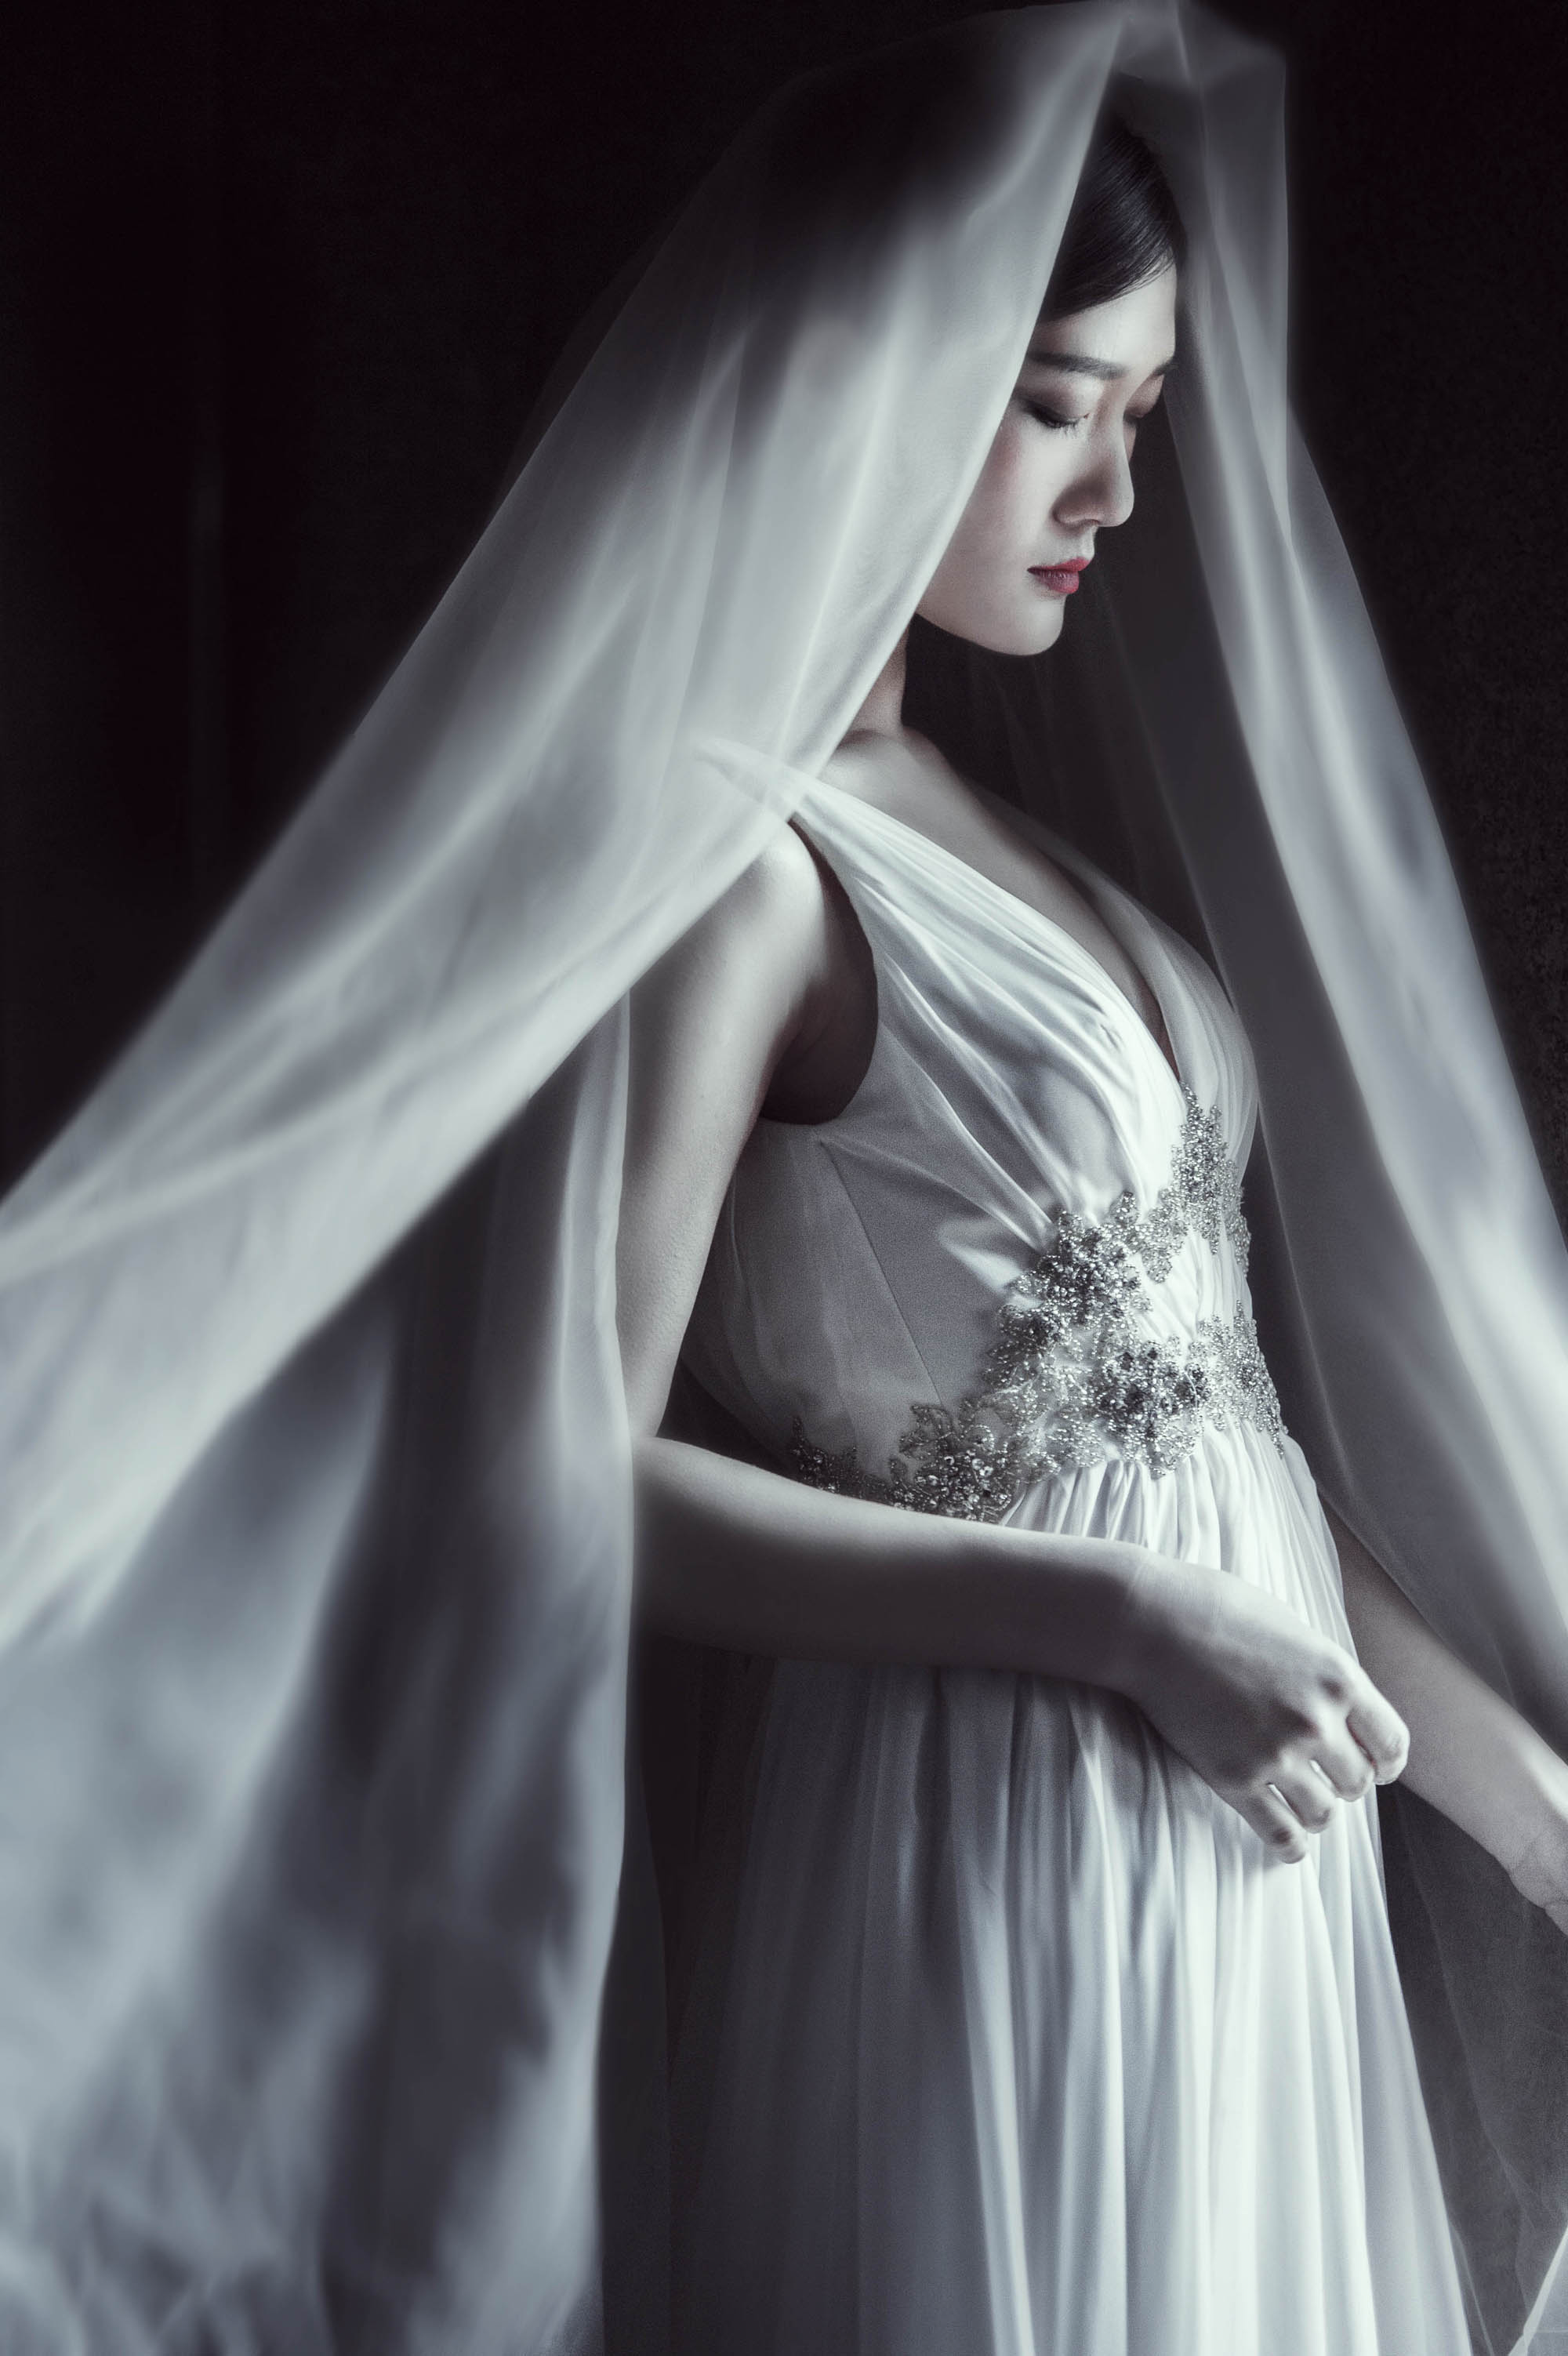 Moody portrait of bride in veil and jeweled gown, by CM Leung